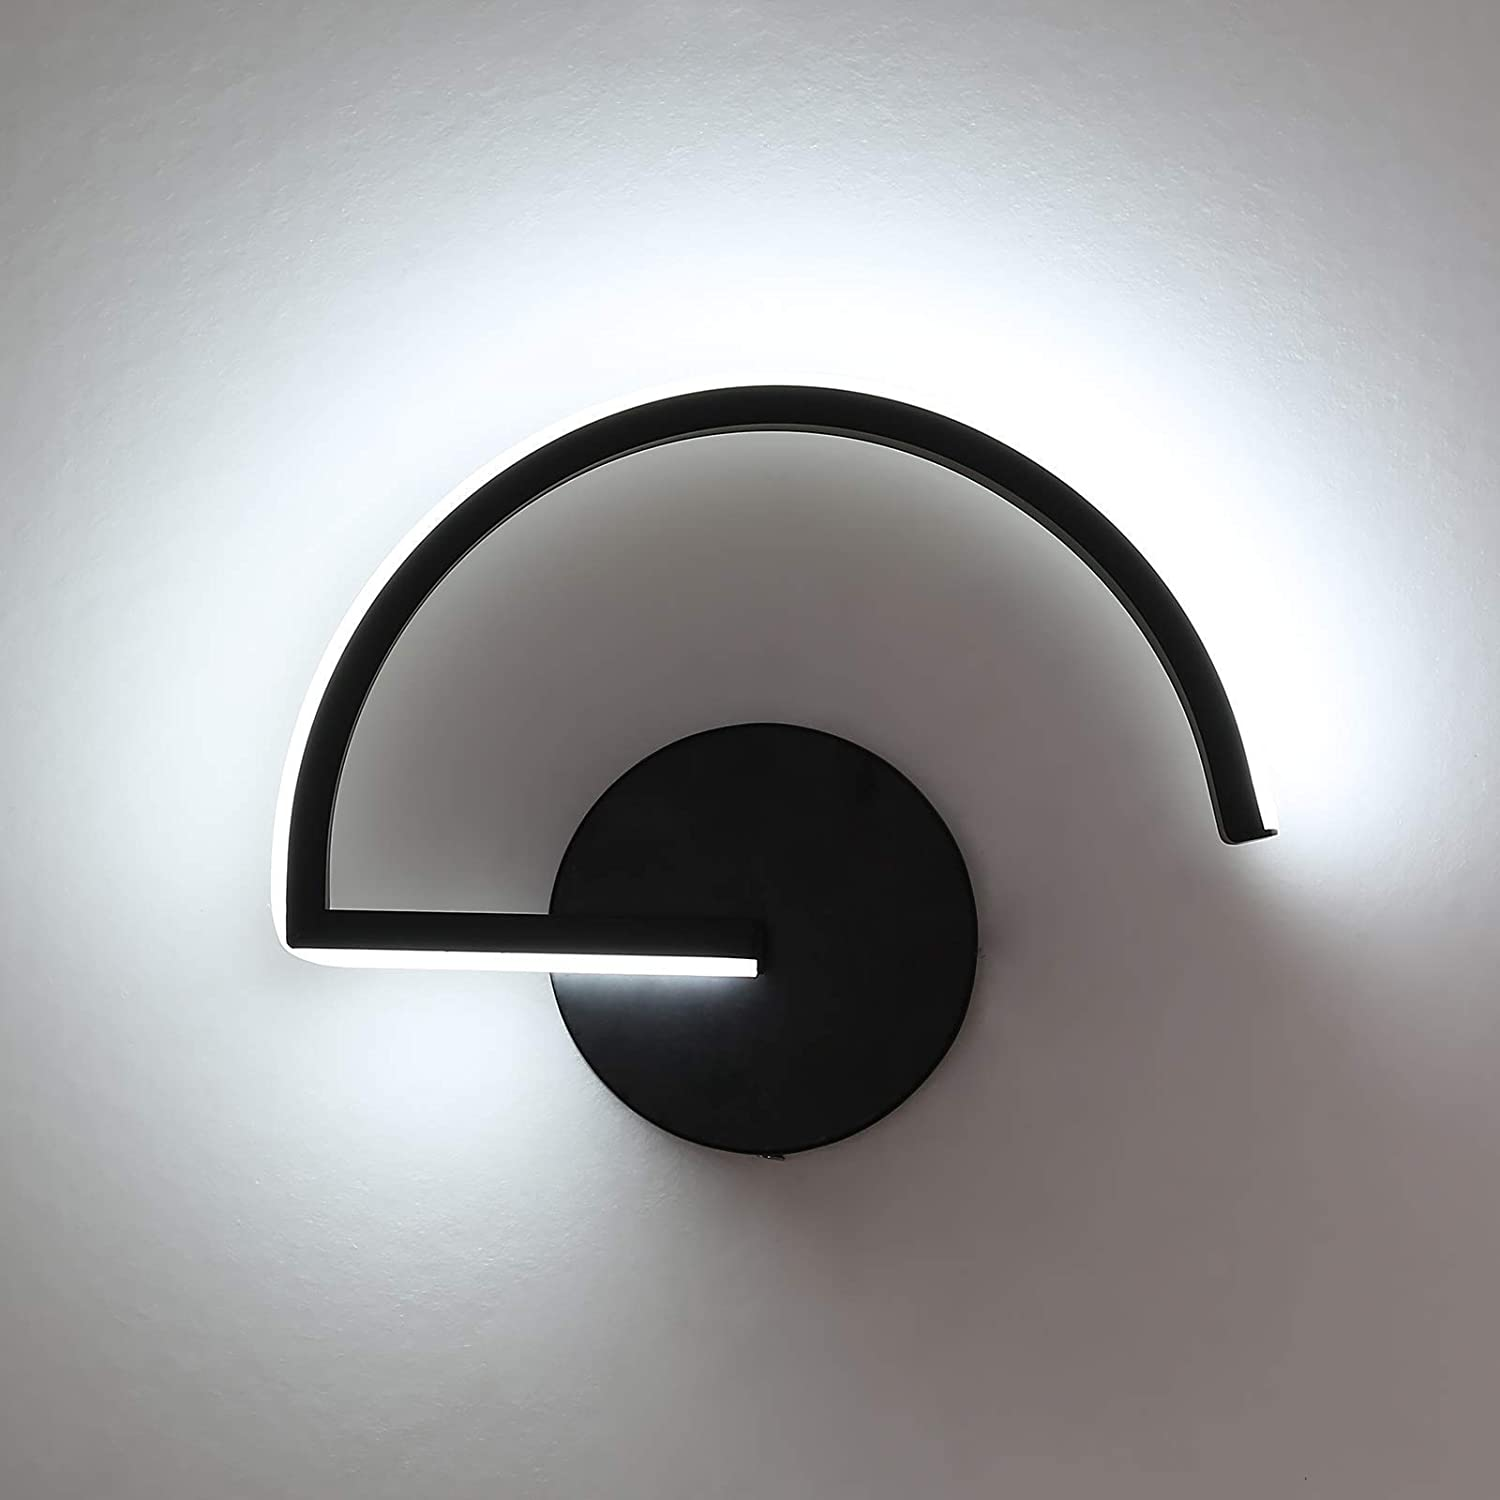 PULUOTI Modern LED Wall Sconce, Black Metal in Semi-arc Shape Indoor Decor Wall Light Fixture, 12W Cool White 6000K Wall Lamp for Living Room Bedroom Corridor Cafe Restaurant